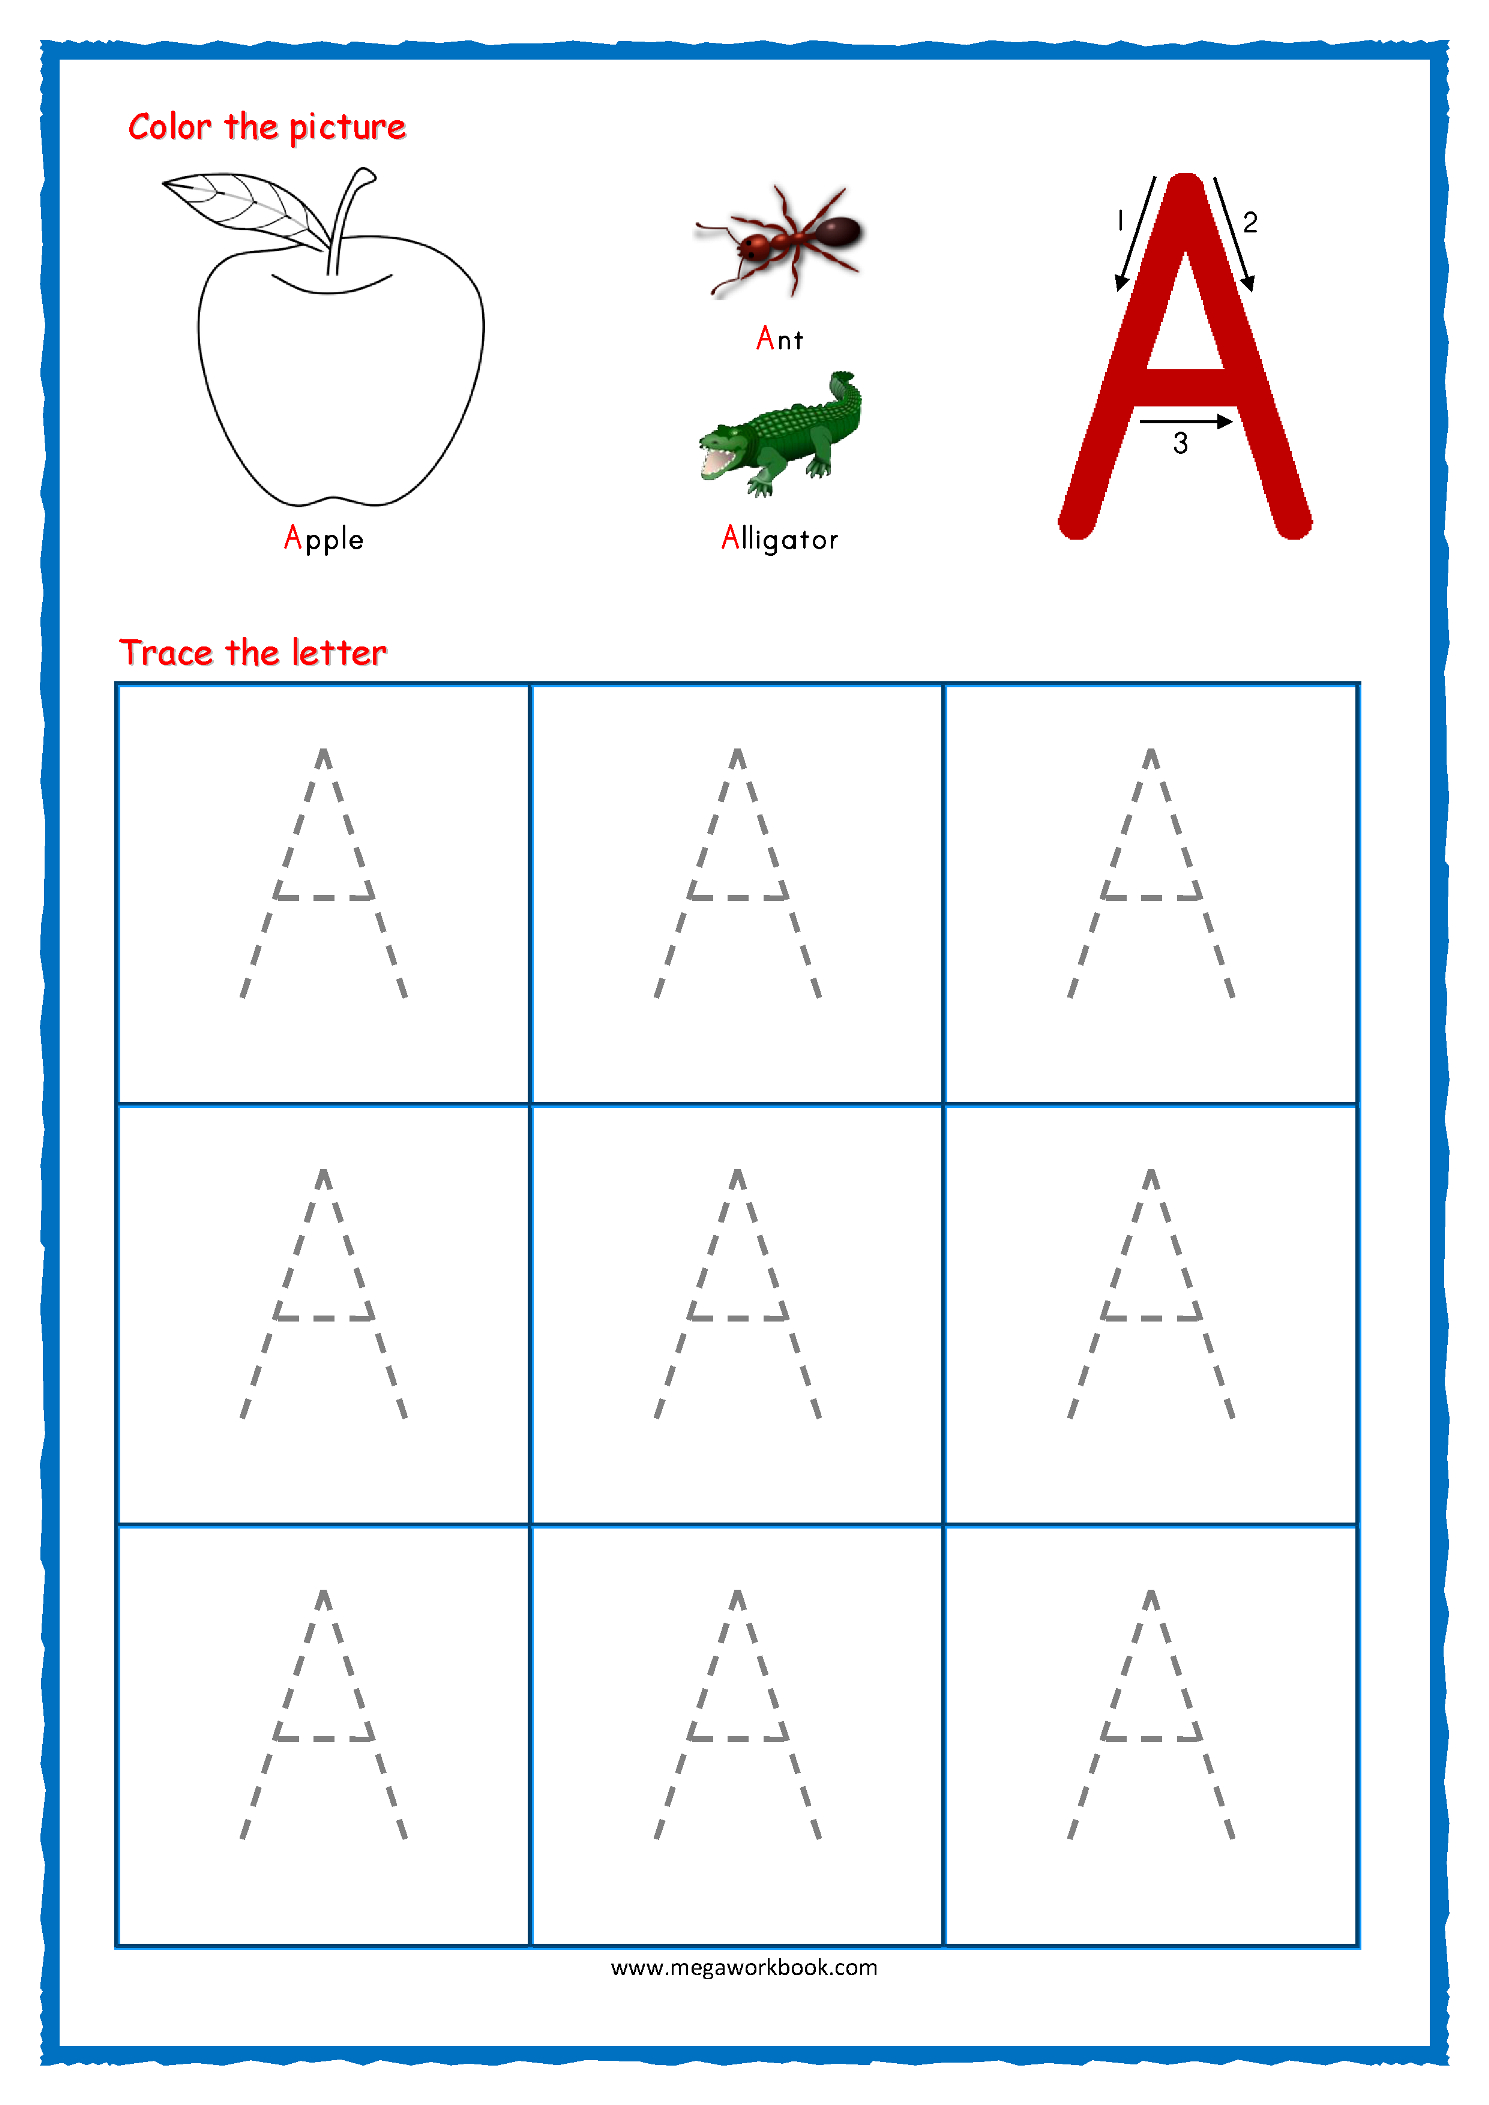 Tracing Letters - Alphabet Tracing - Capital Letters with regard to Letter I Tracing Page